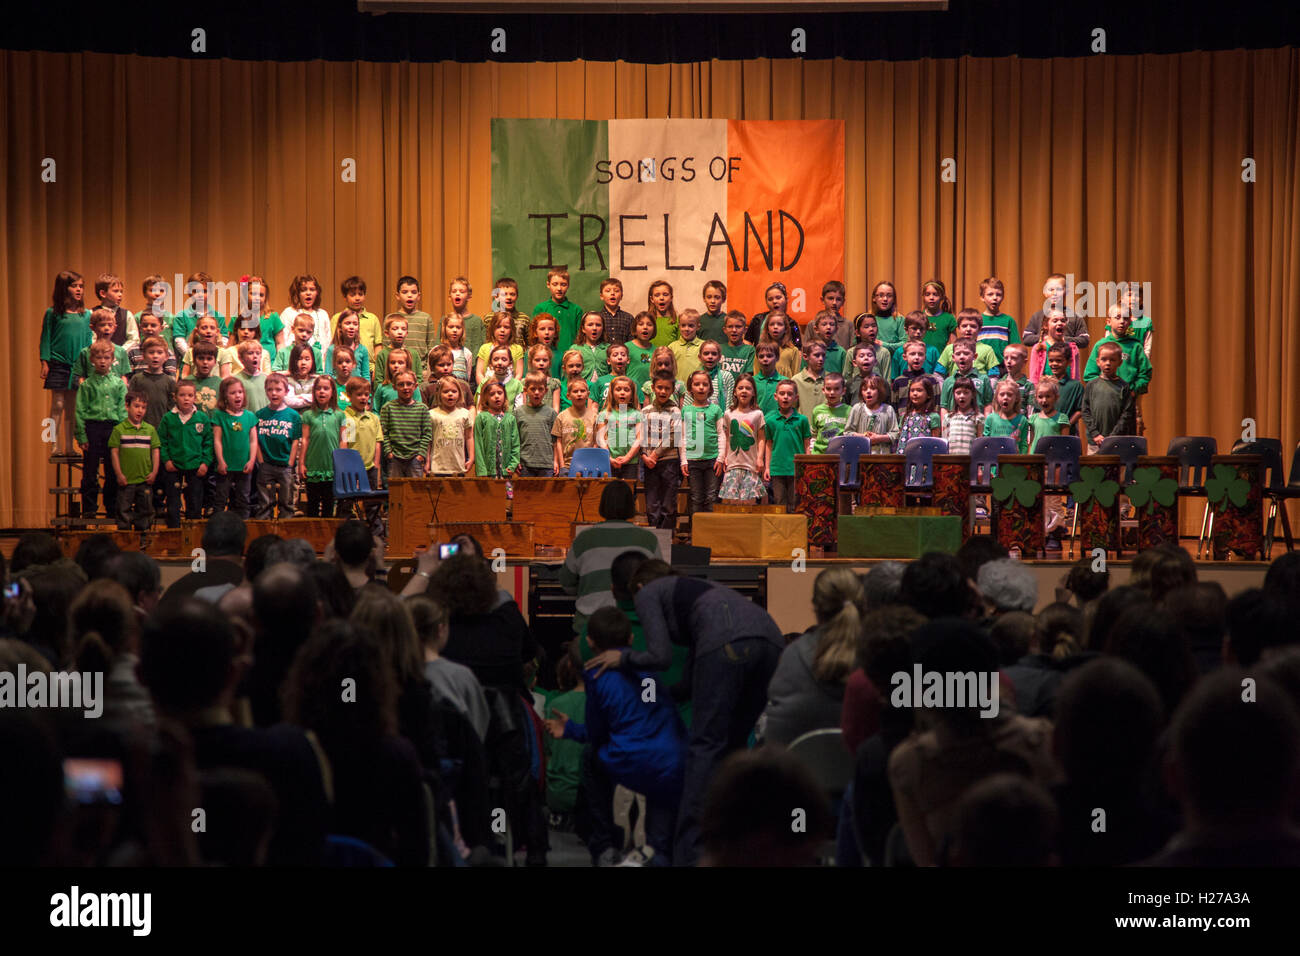 Large group of children singing songs of Ireland at a school performance on stage. St Paul Minnesota MN USA - Stock Image